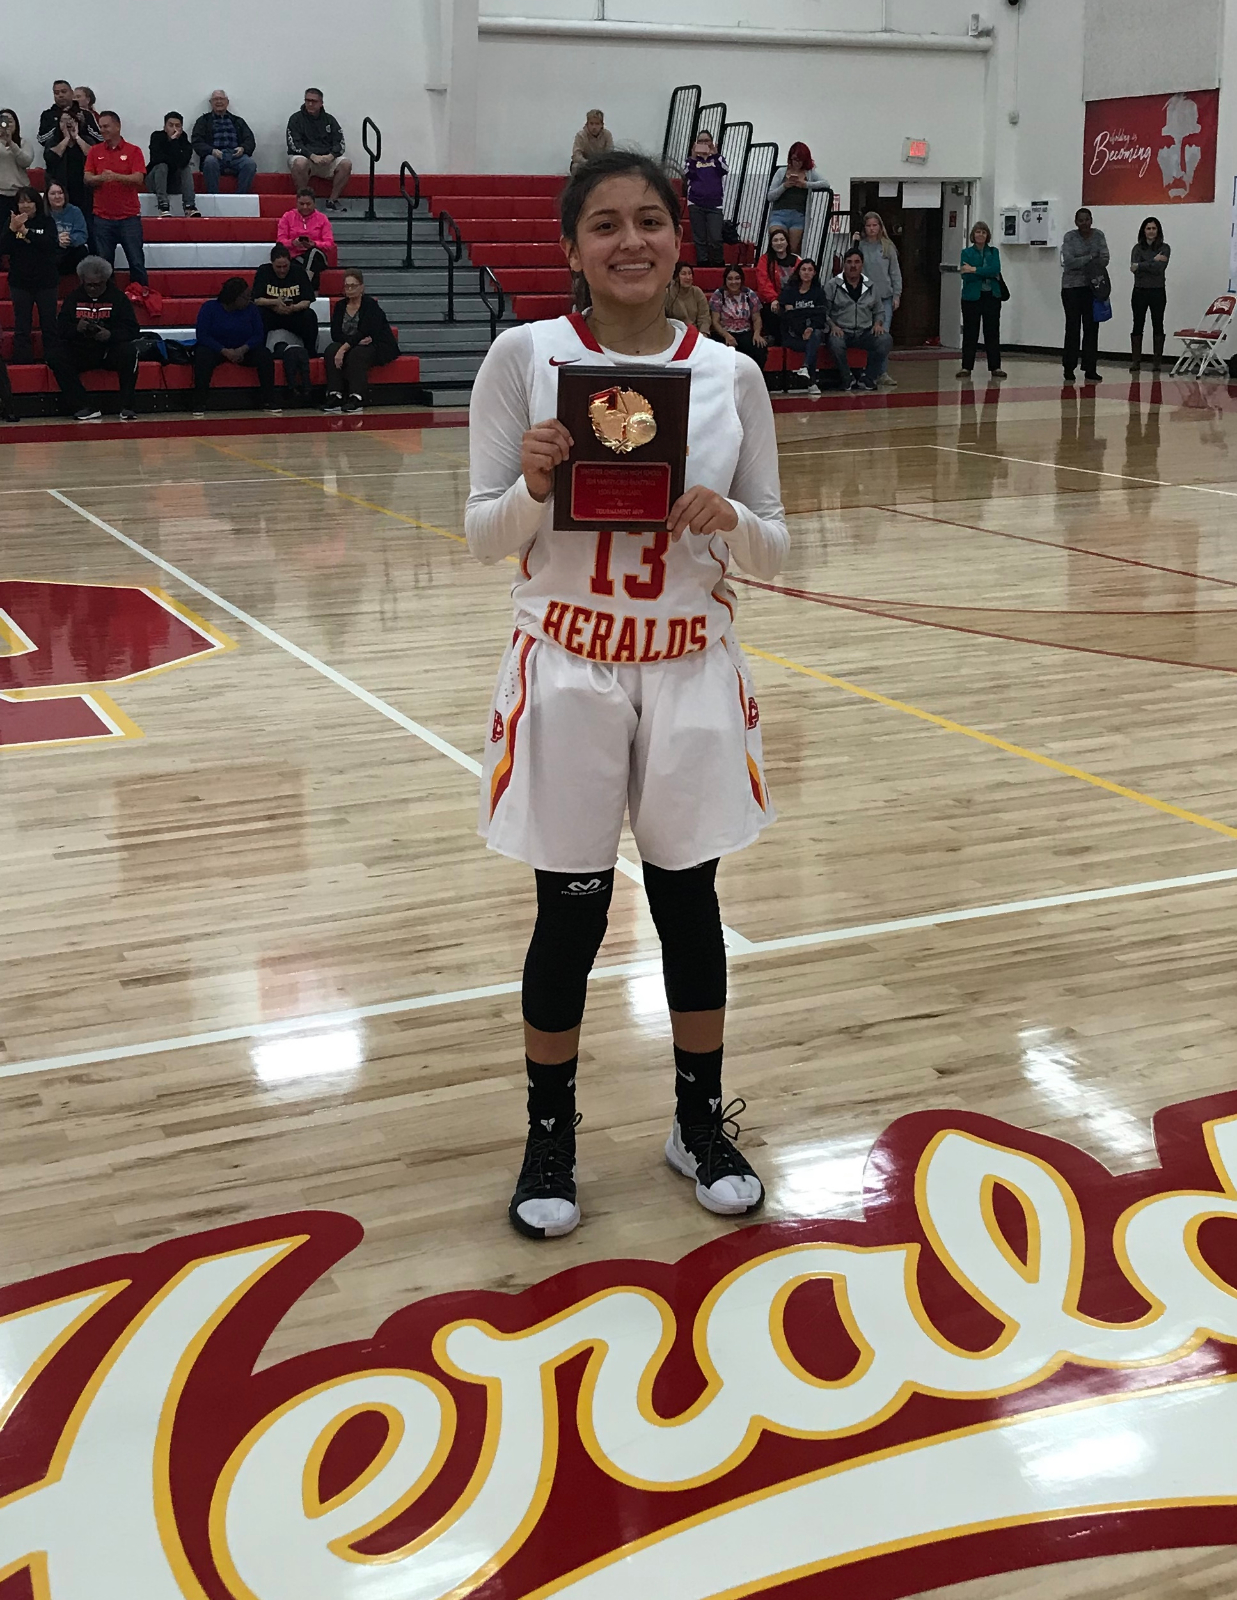 Joleen Corona chosen as San Gabriel Valley Athlete of the Week!